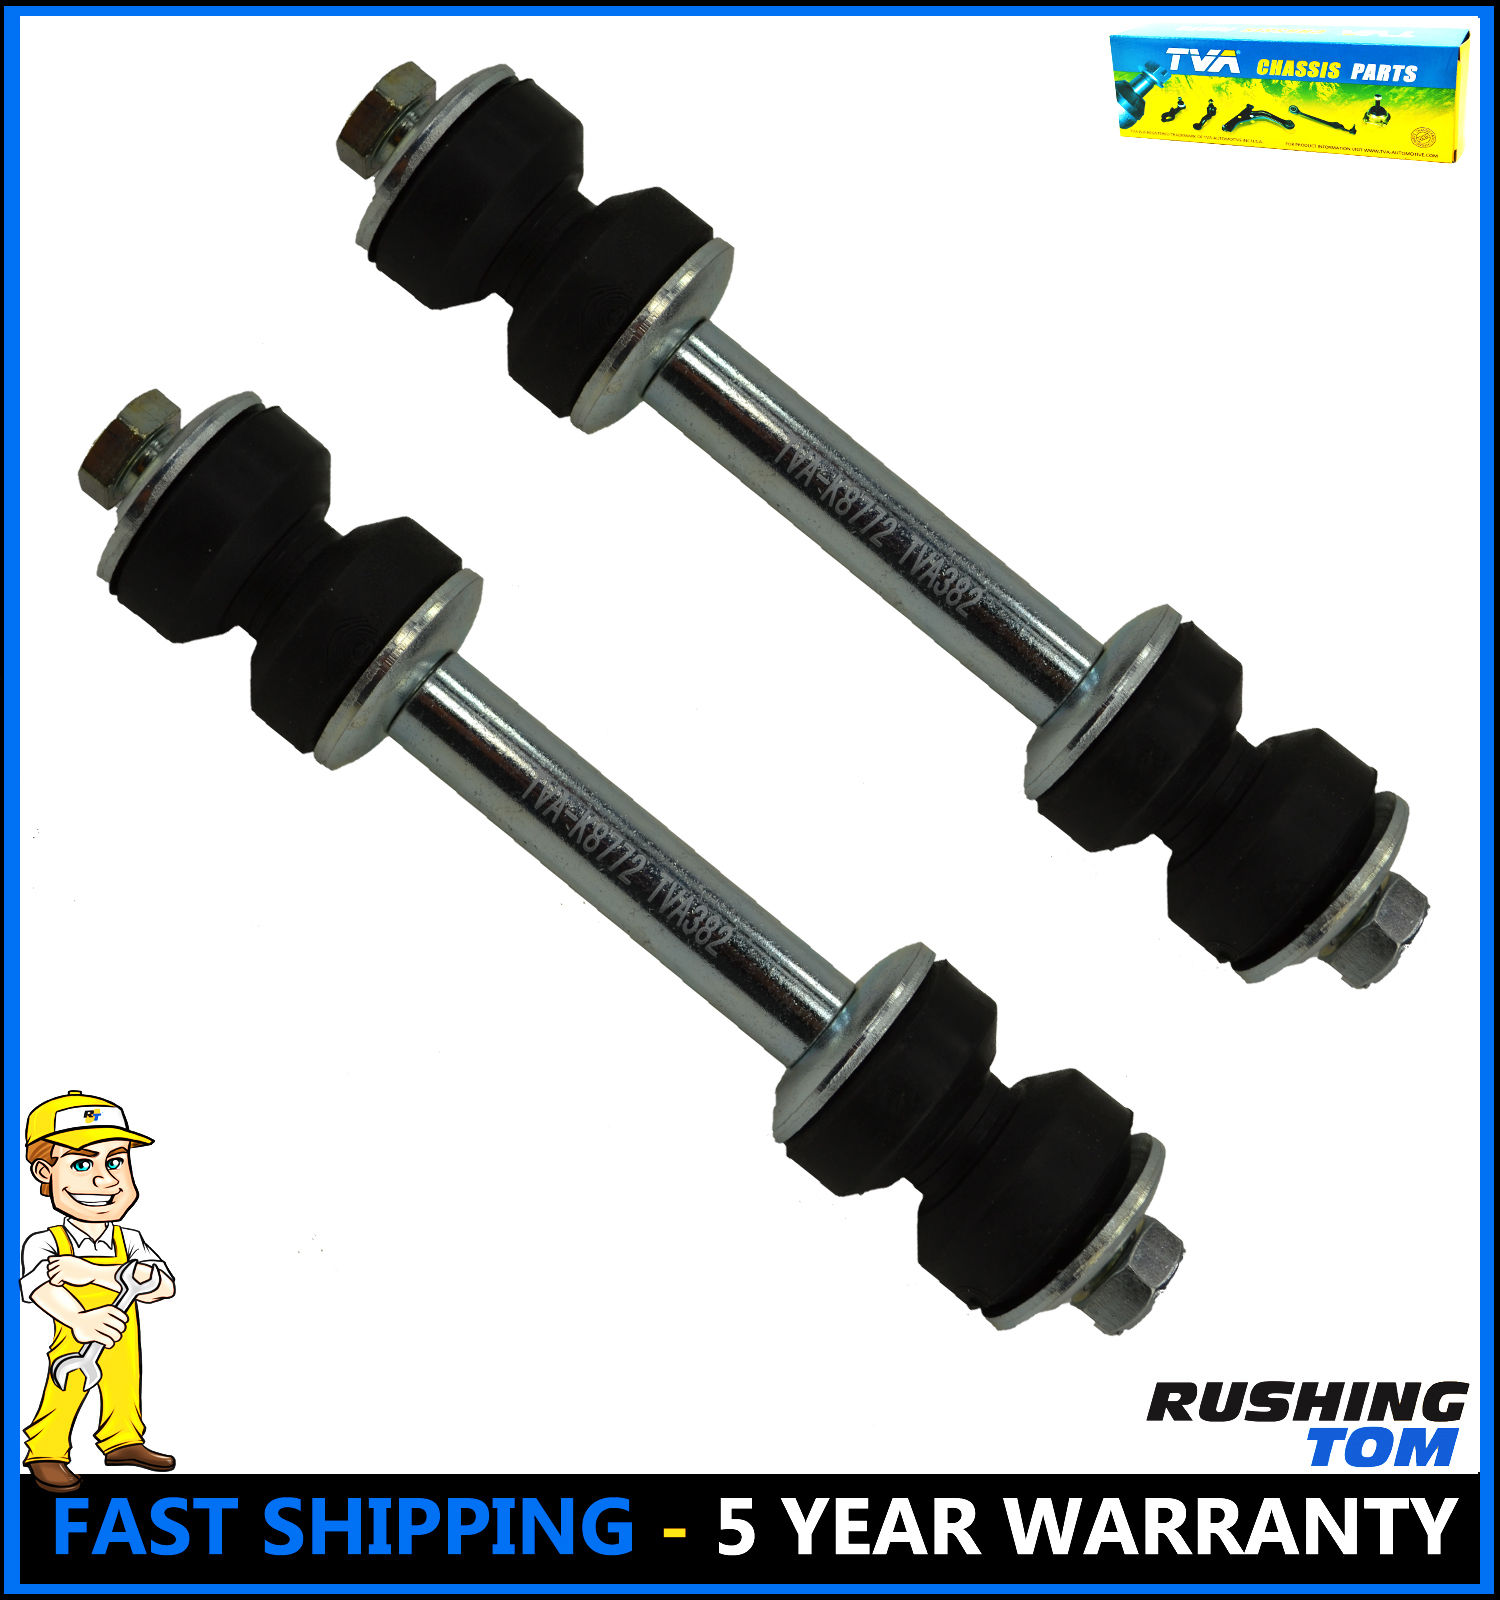 PartsW 2 Pcs Suspension Kit for Ford Expedition F-150 F-250 /& Lincoln Blackwood Navigator Front Sway Bar Links